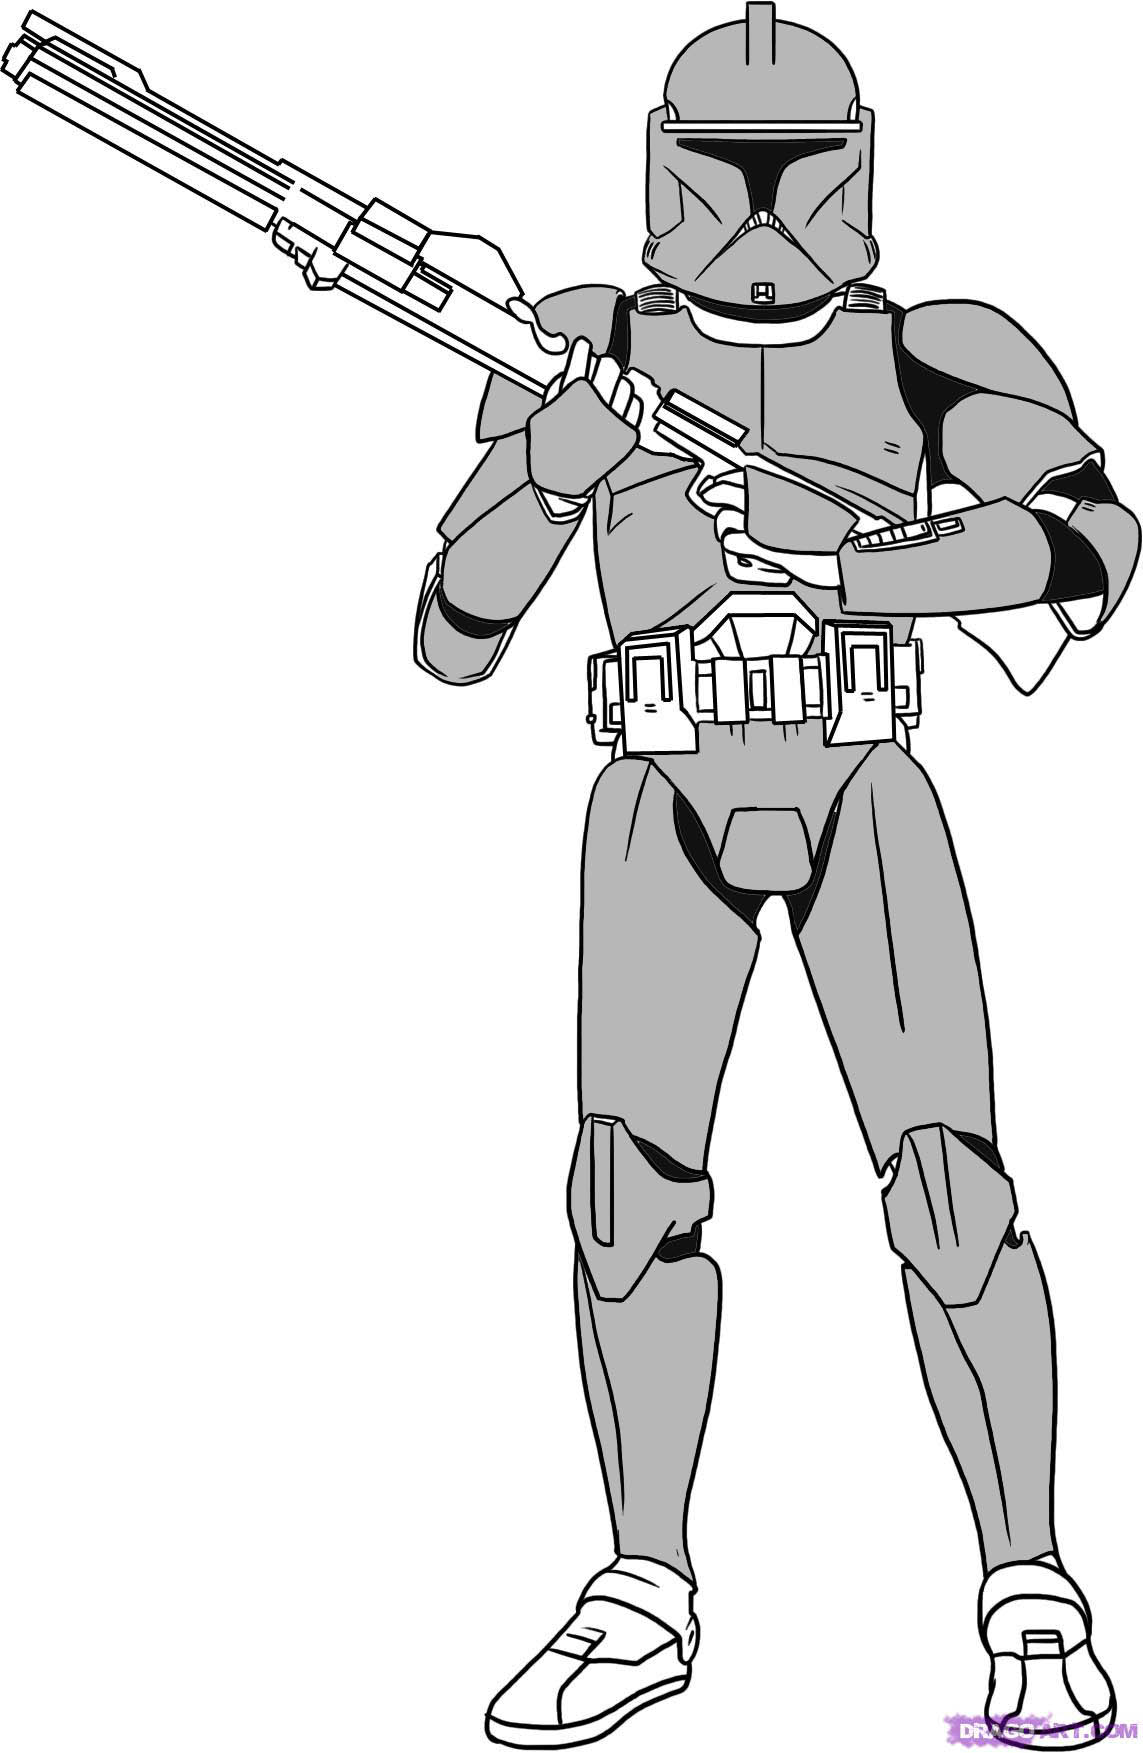 clone trooper coloring pages - color outline assignment andycox57